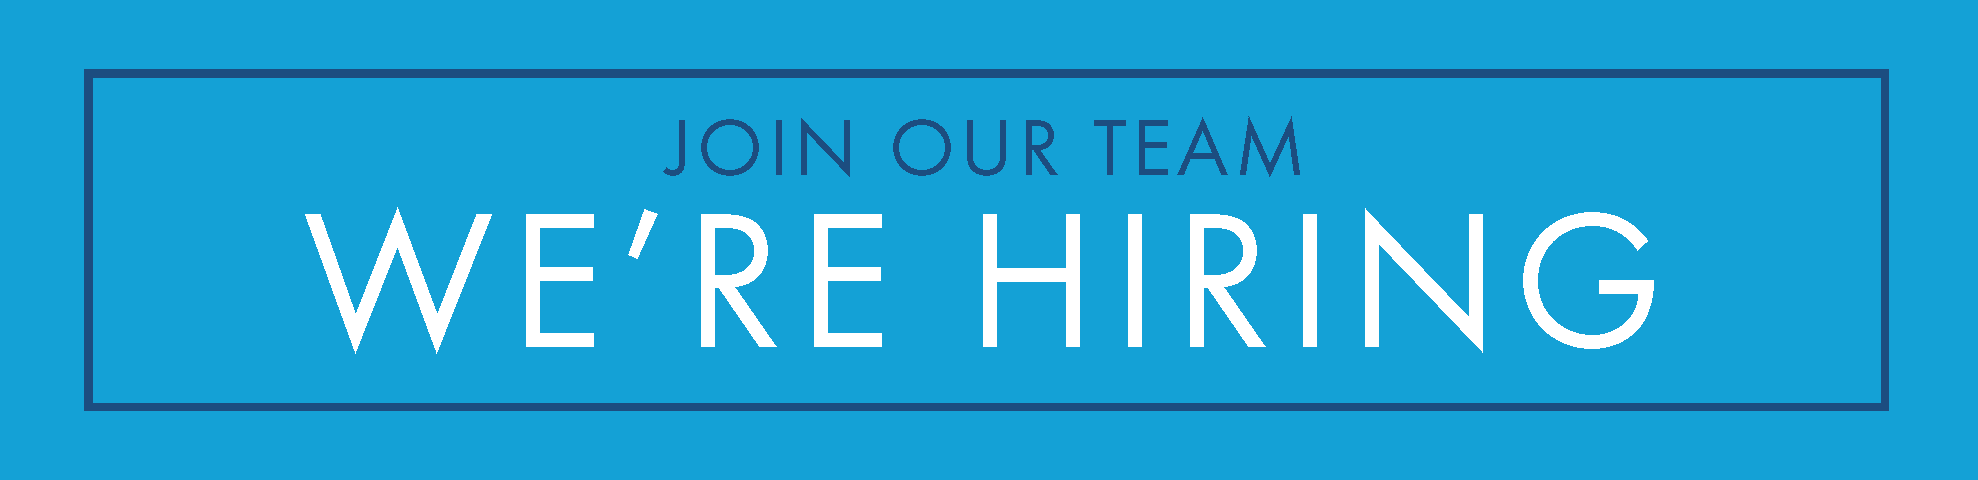 Join our Team - Now Hiring Home Health Care Jobs - CNA